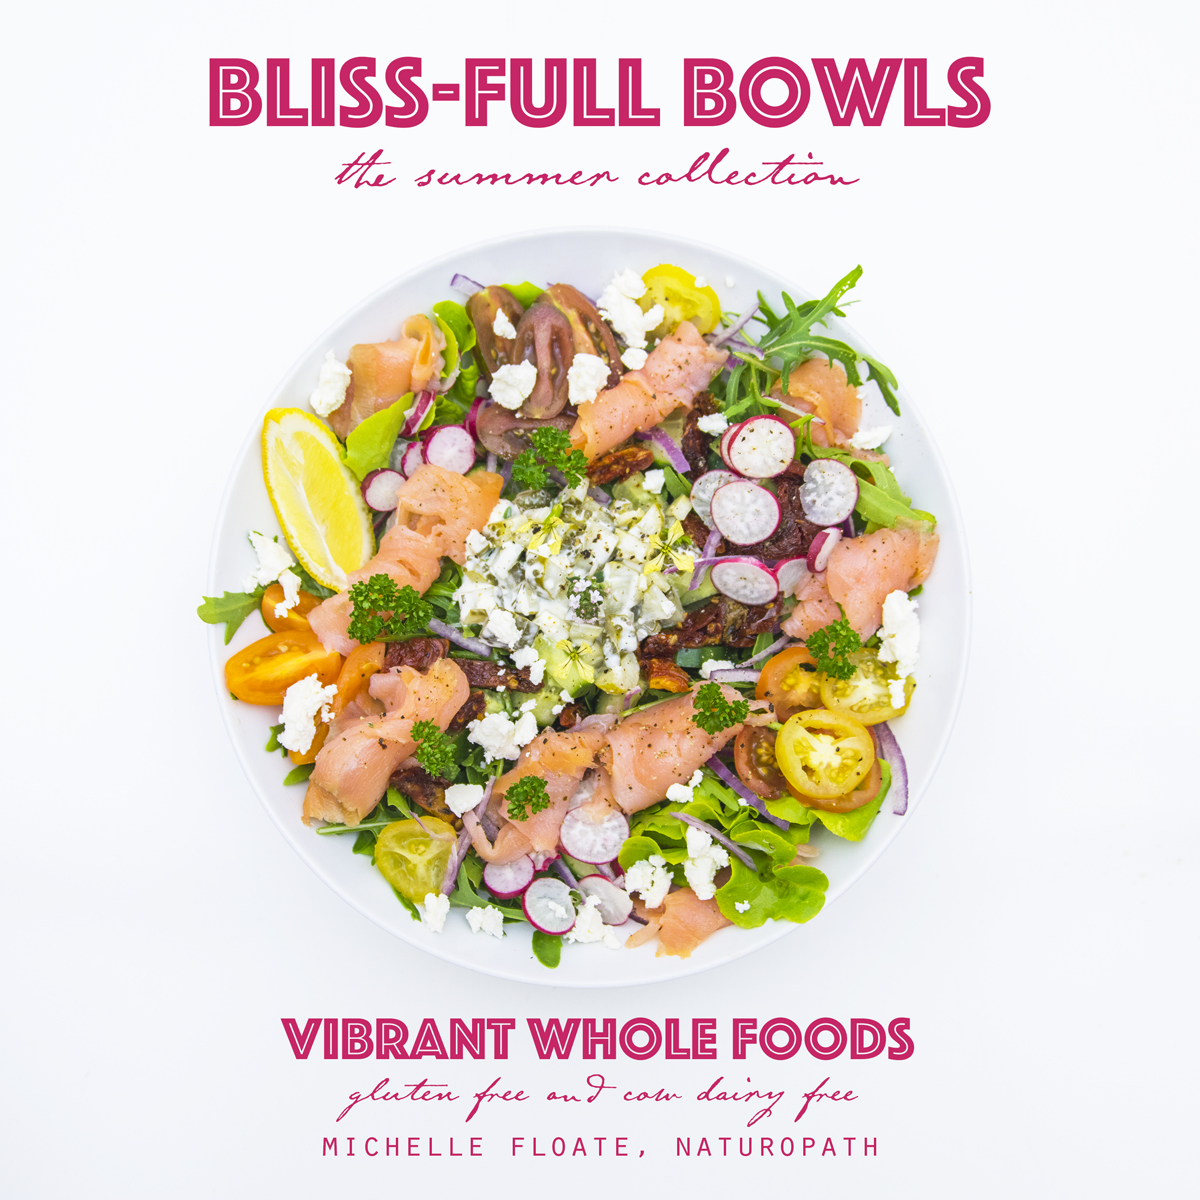 Bliss full bowls the bikini cookbook bliss full bowls forumfinder Image collections